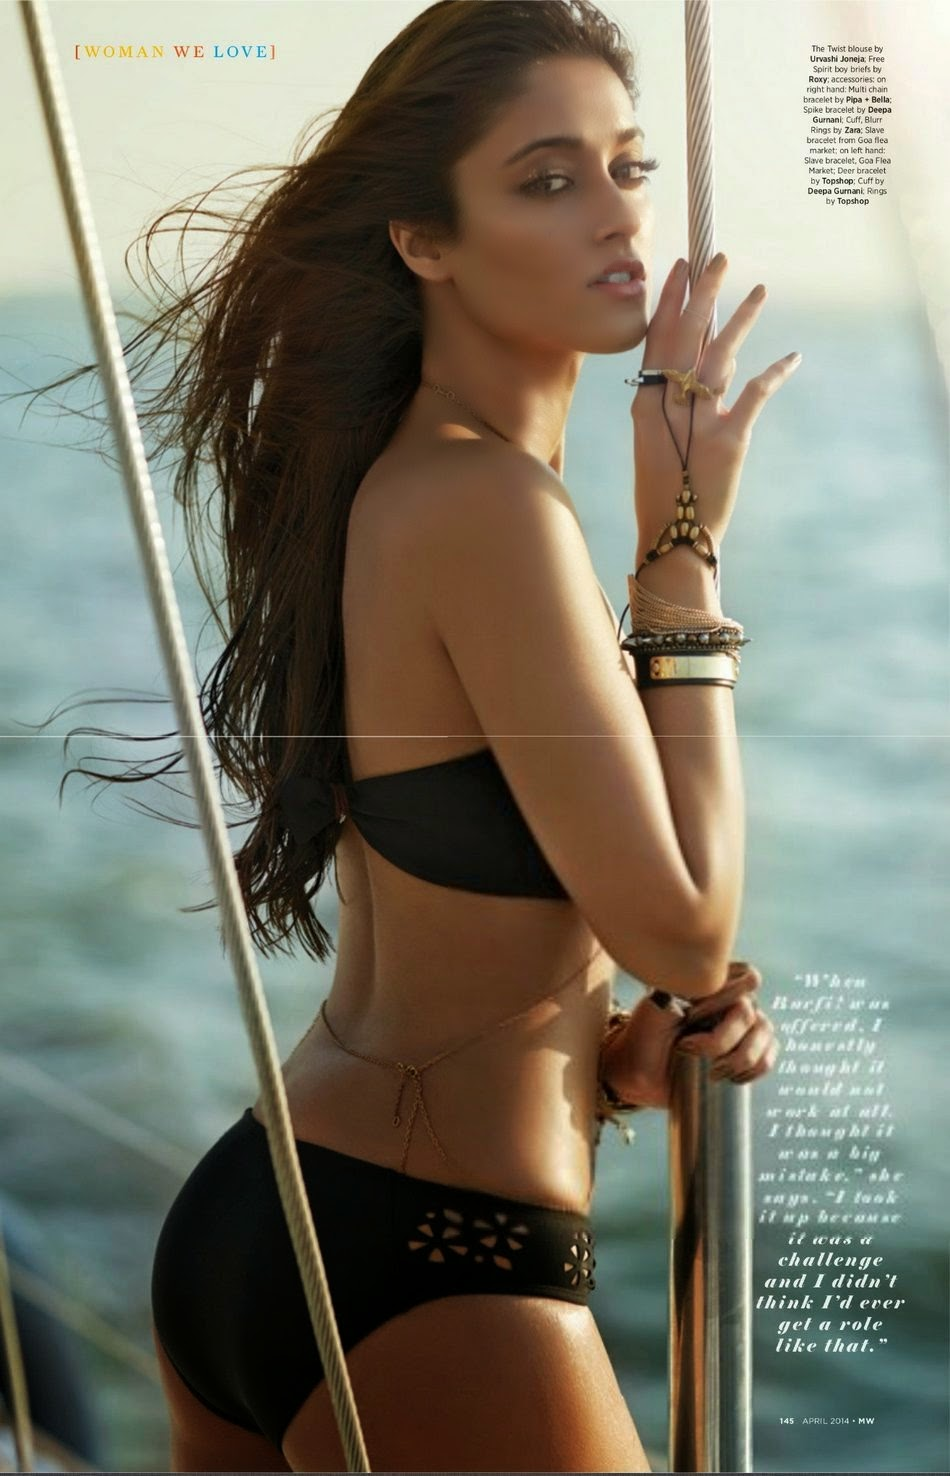 Ileana Bikini Poses For Man World